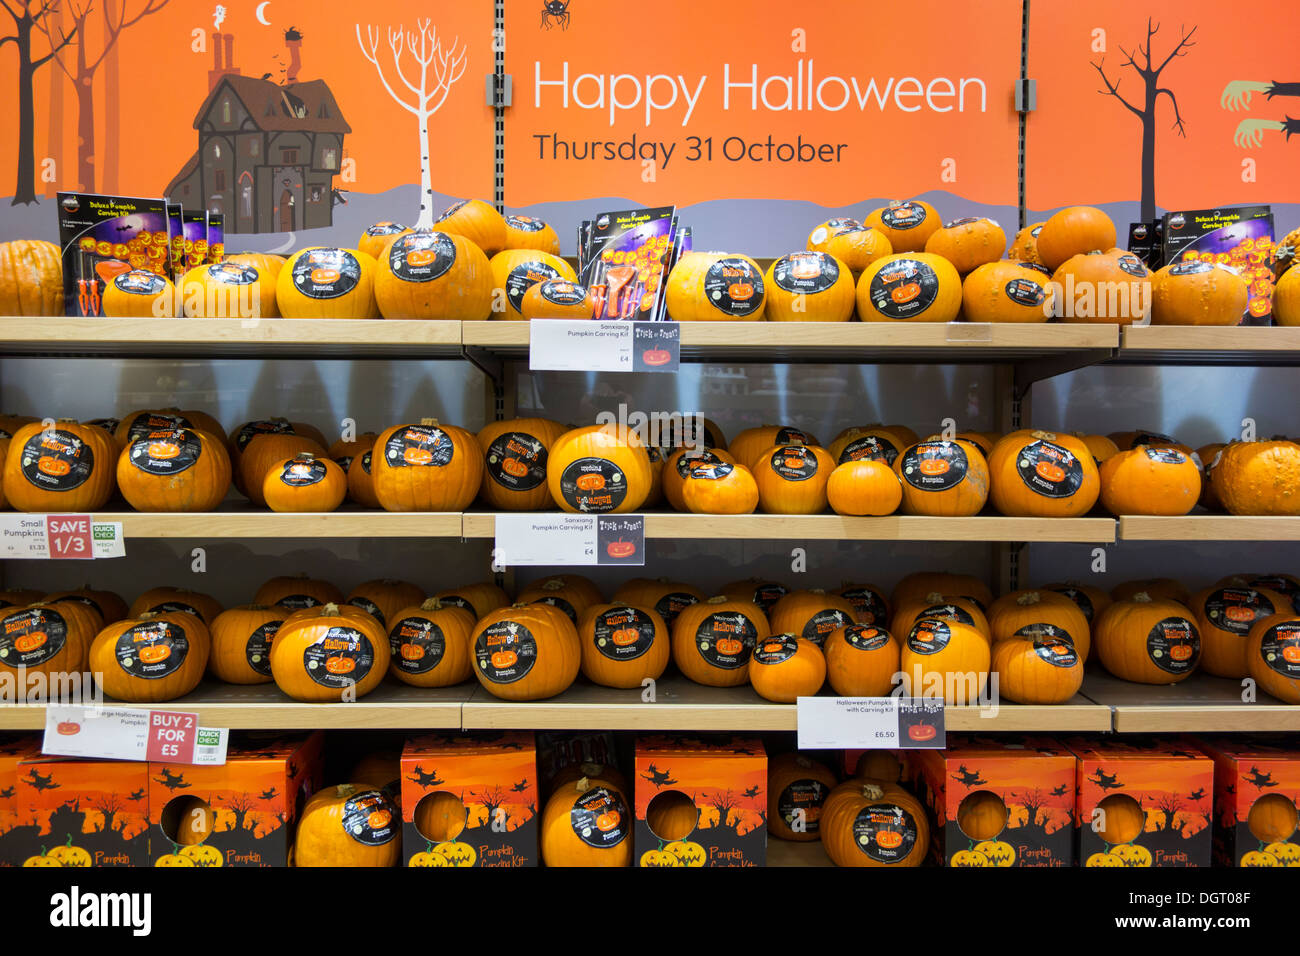 pumpkins halloween merchandise stock photos & pumpkins halloween